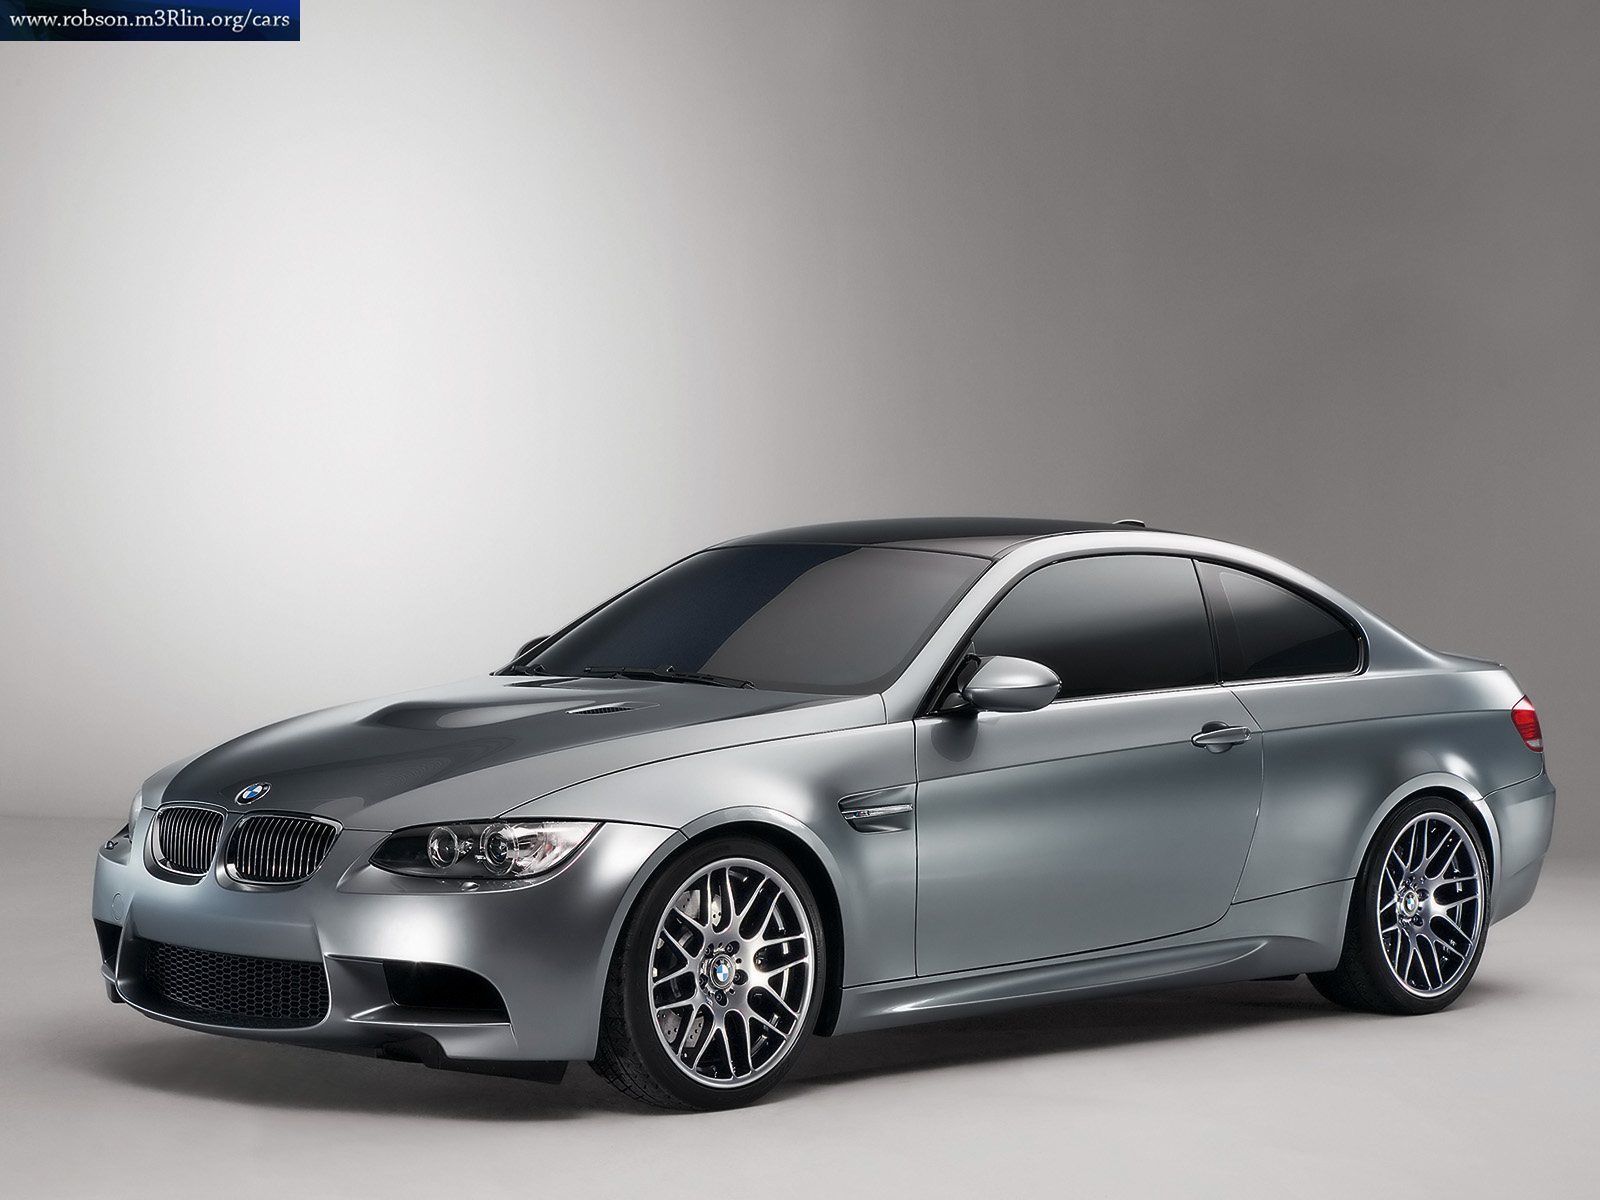 2011 Bmw M3 Pickup Concept Side Profile Pictures to pin on Pinterest